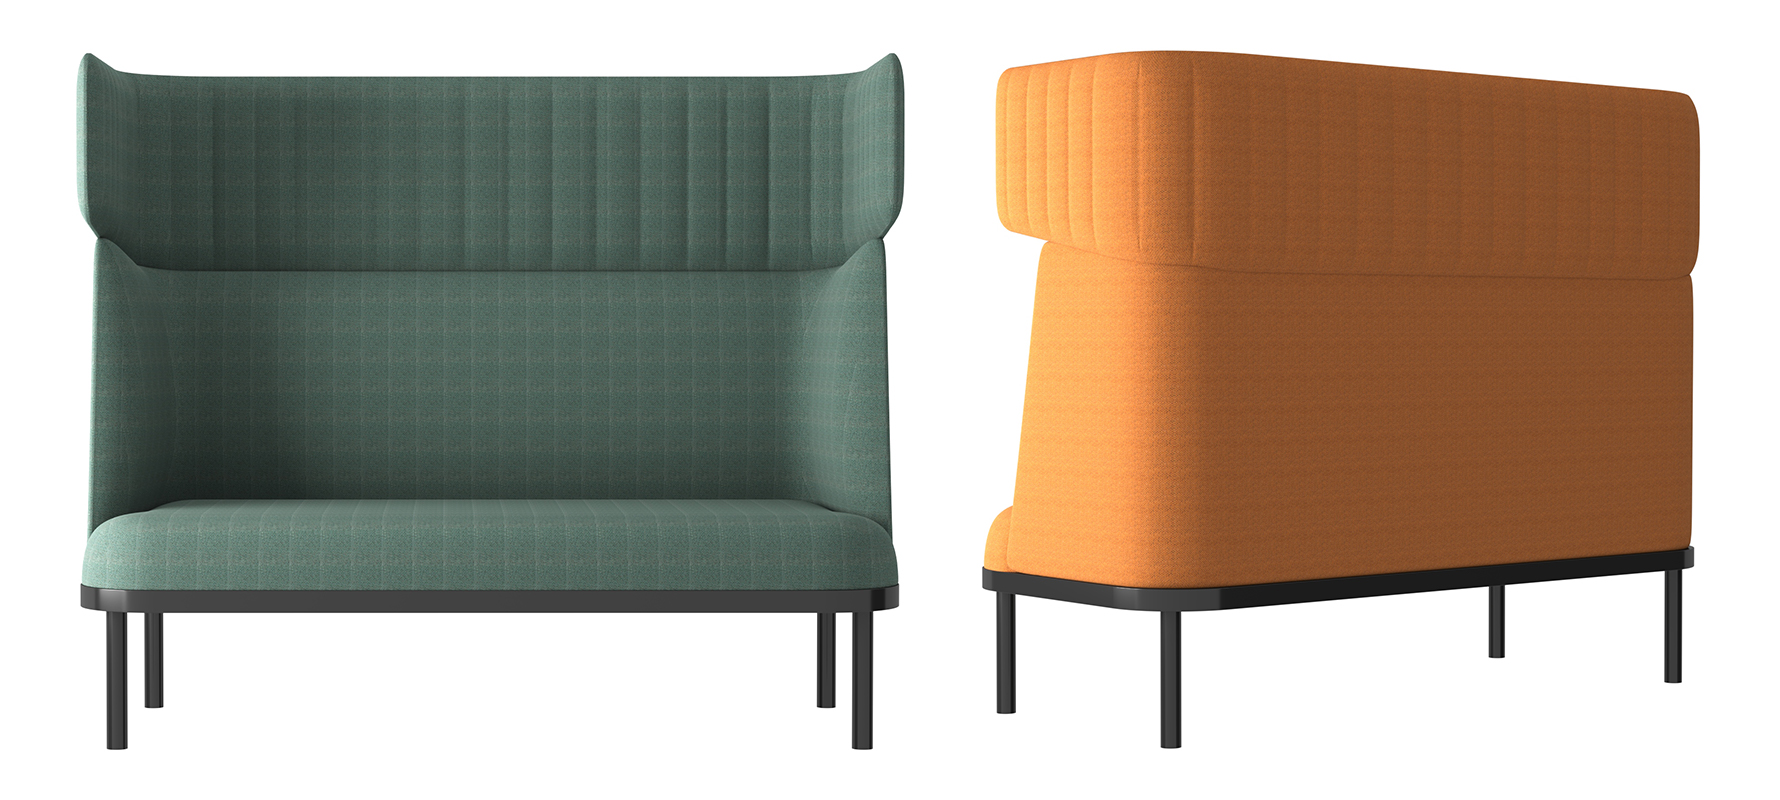 Image 3 for SHEEP DOUBLE SOFA BOOTH BY ARCHINI